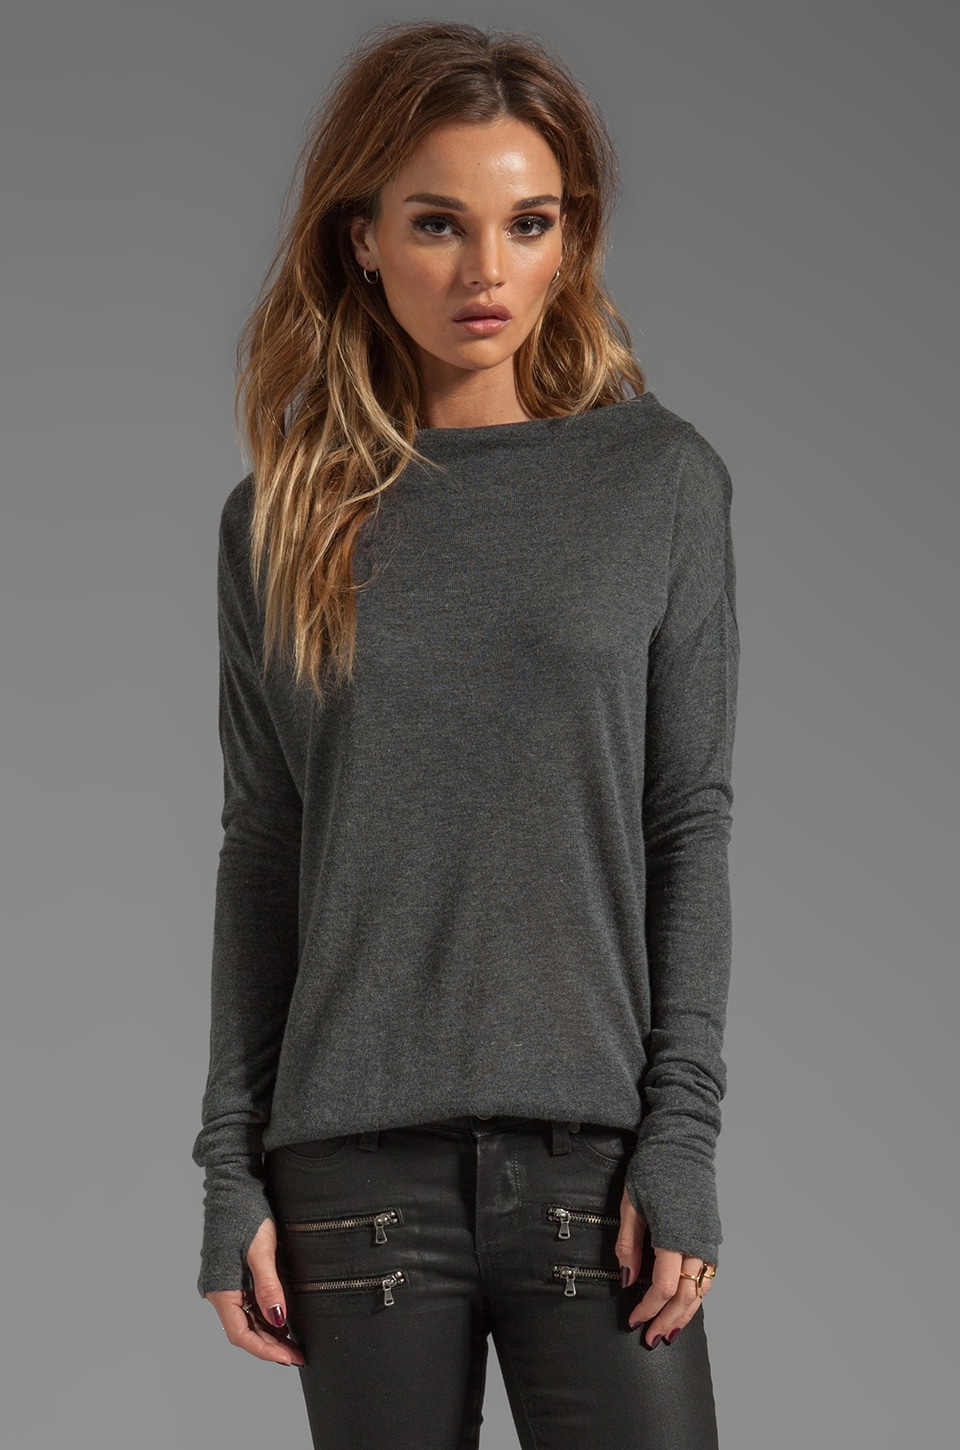 Feel the Piece Funnel Neck Sweater in Charcoal